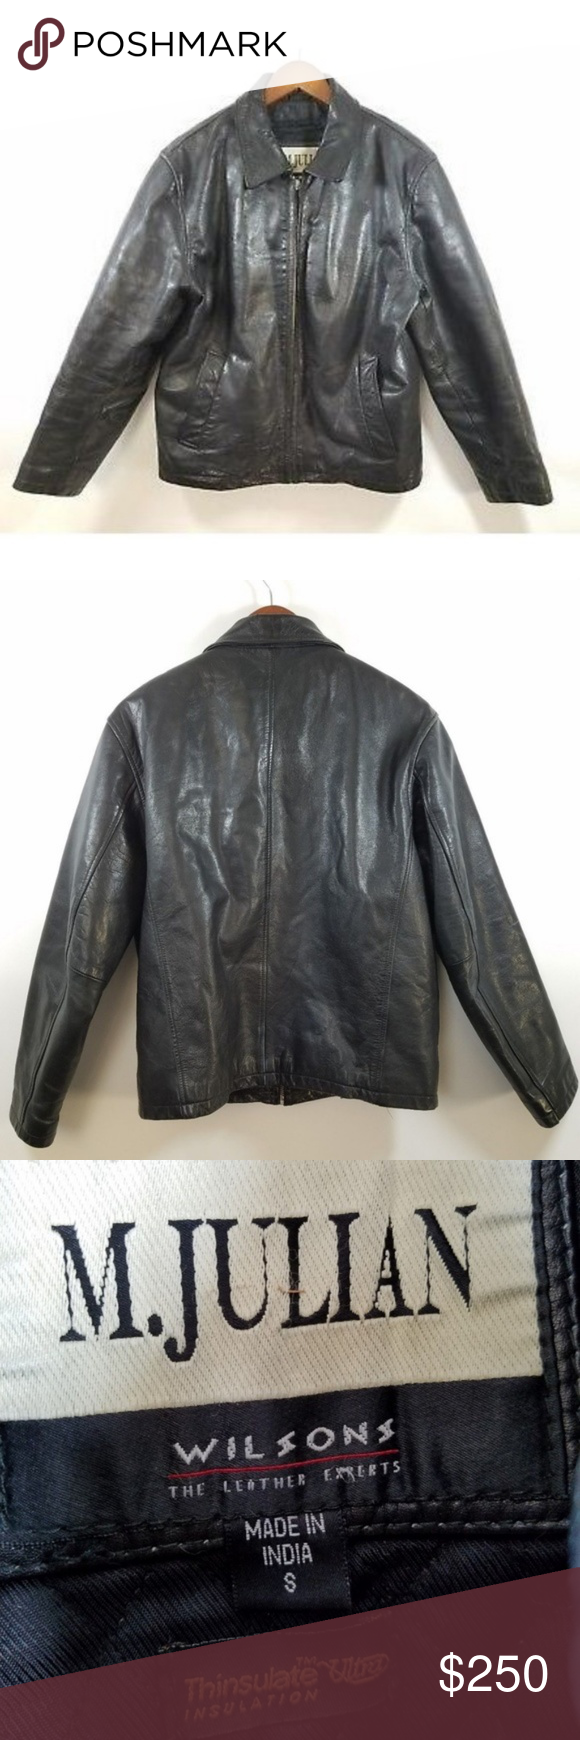 M. Julian Wilsons Black Leather Jacket Moto Size S